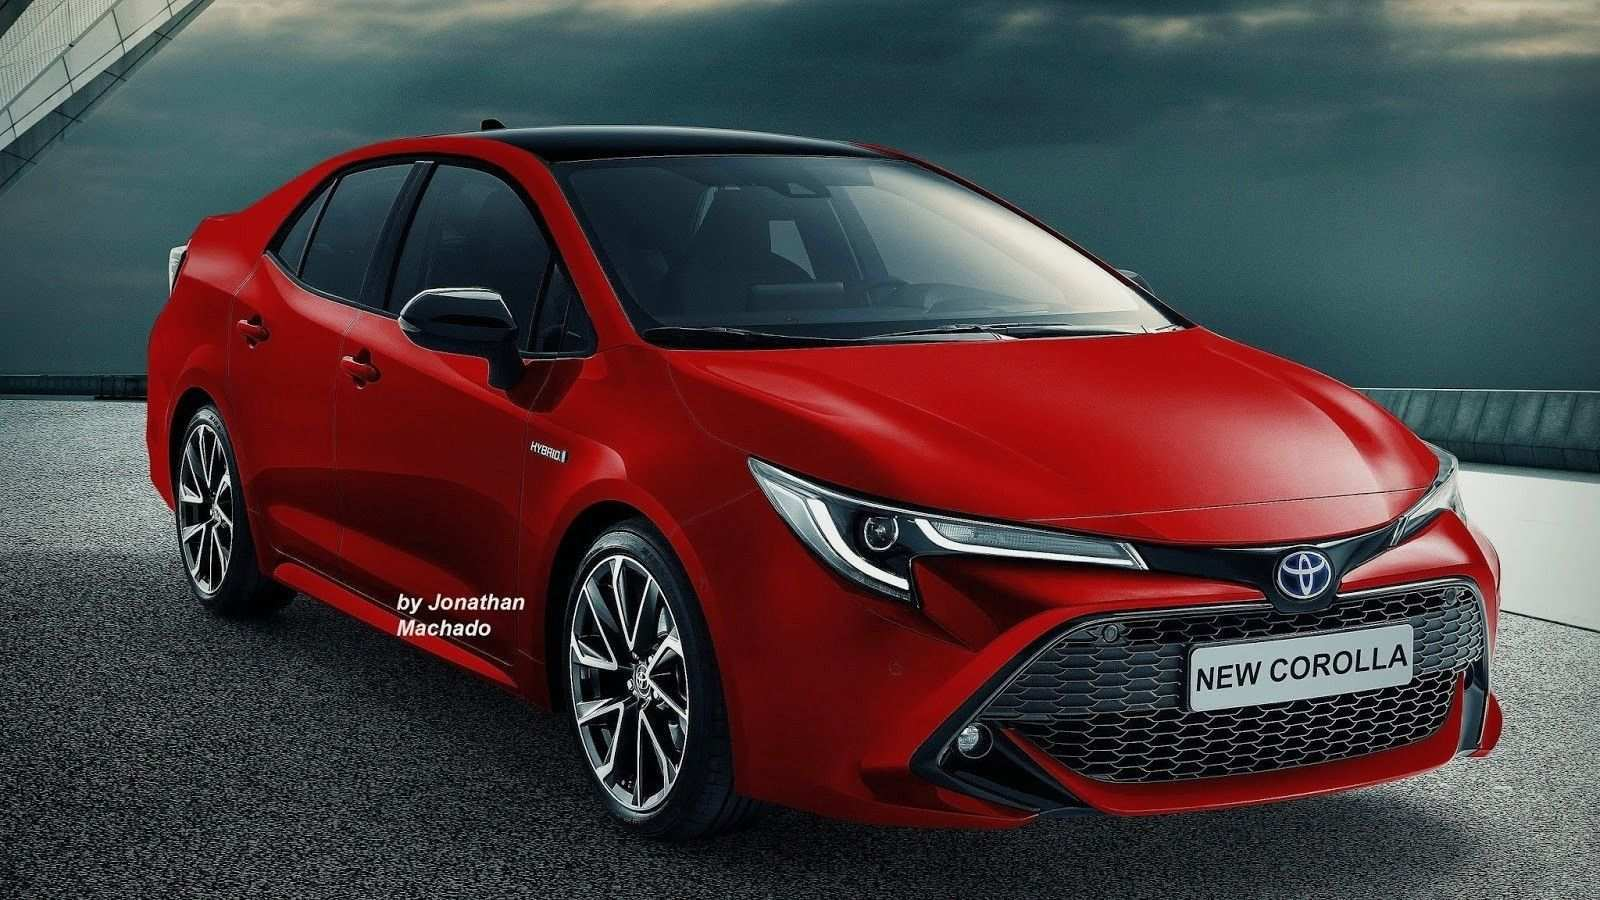 75 Great Toyota Auris 2019 Release Date Exterior with Toyota Auris 2019 Release Date